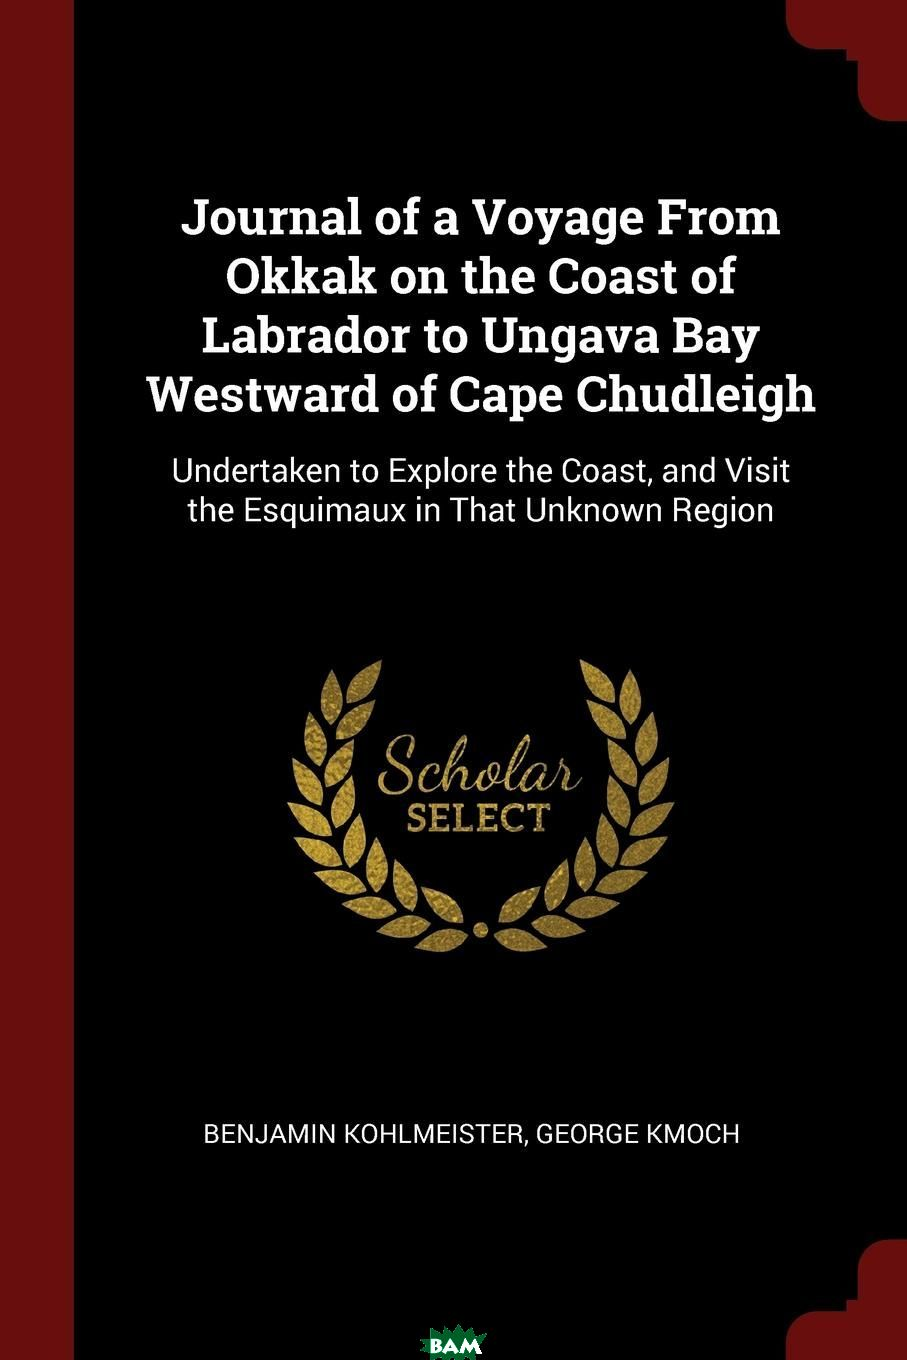 Купить Journal of a Voyage From Okkak on the Coast of Labrador to Ungava Bay Westward of Cape Chudleigh. Undertaken to Explore the Coast, and Visit the Esquimaux in That Unknown Region, Benjamin Kohlmeister, George Kmoch, 9781375401494